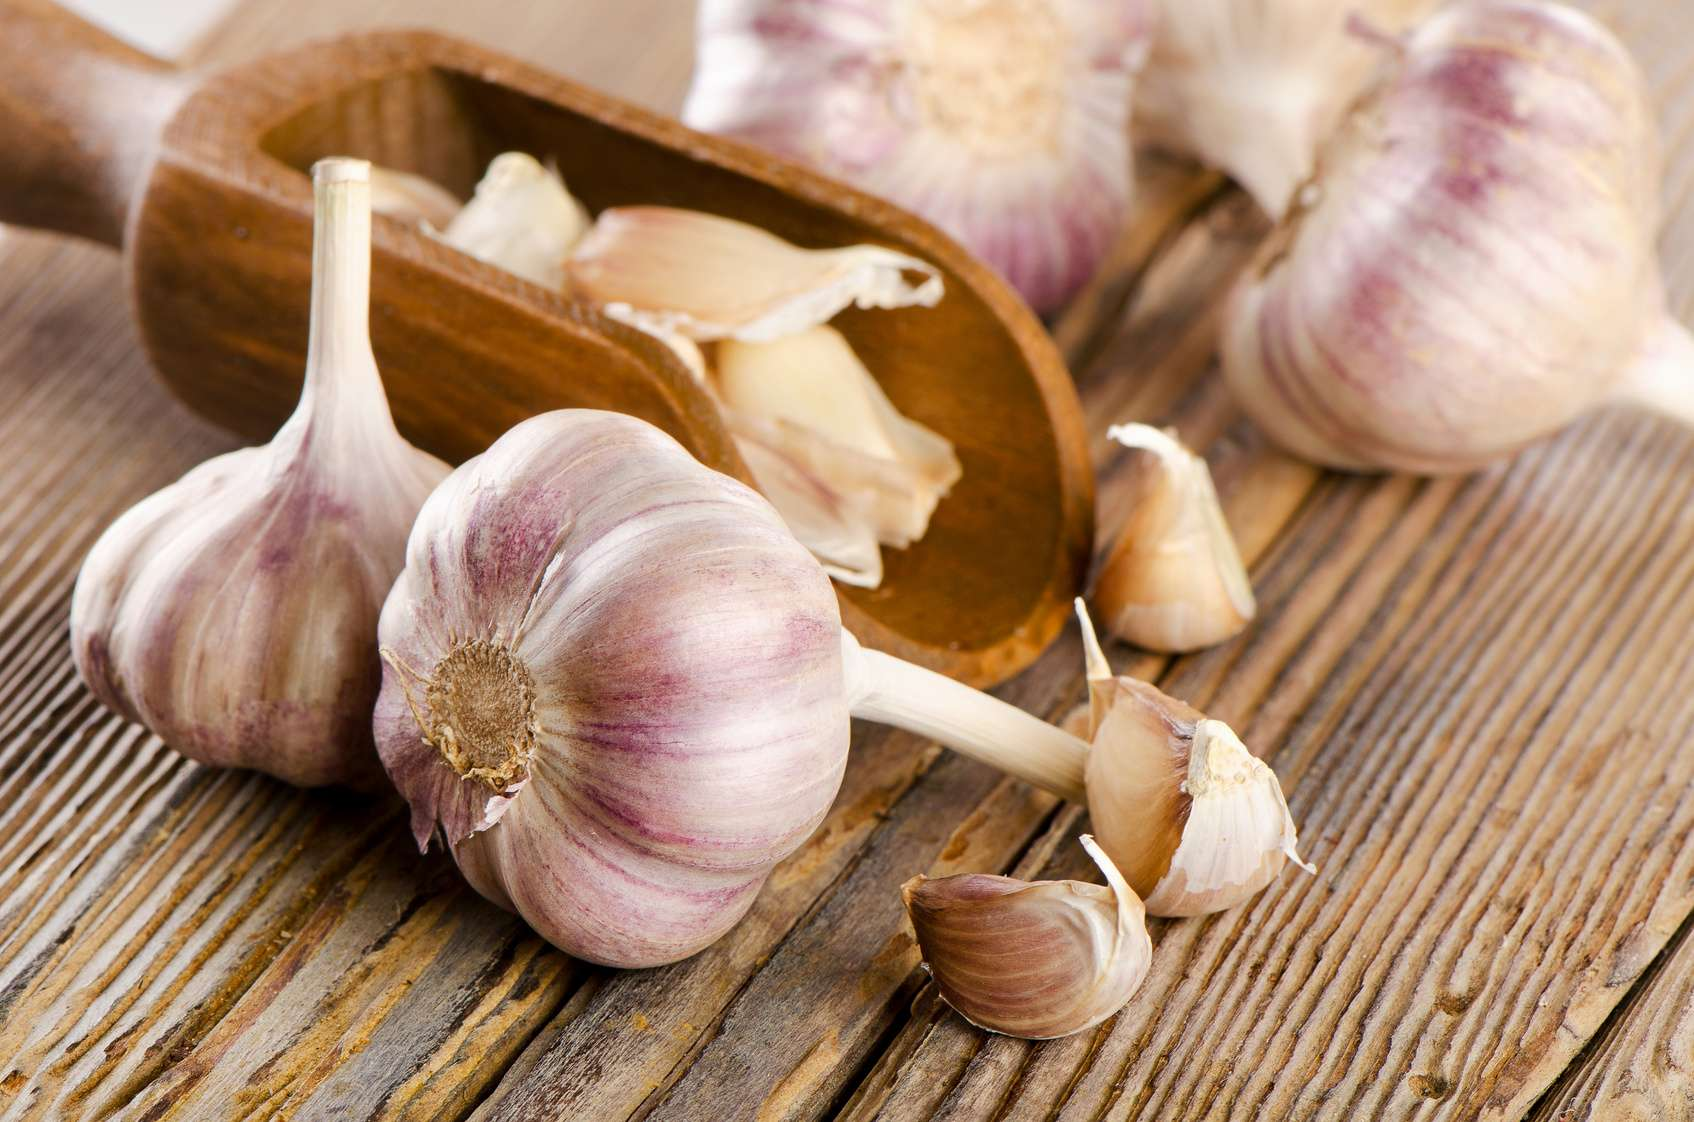 Garlic: what are its health benefits?